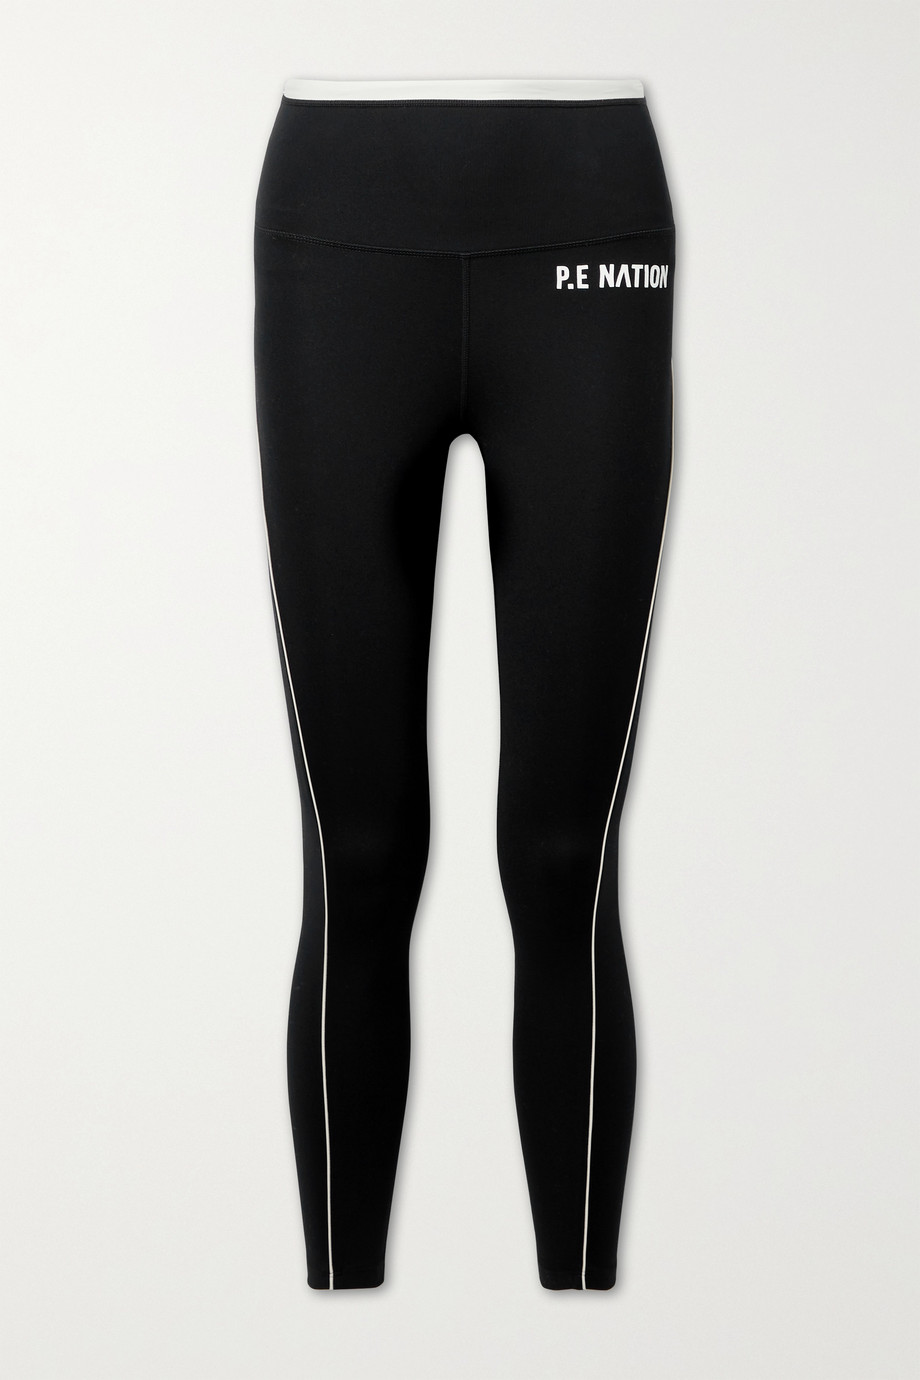 P.E NATION Match Play printed stretch leggings